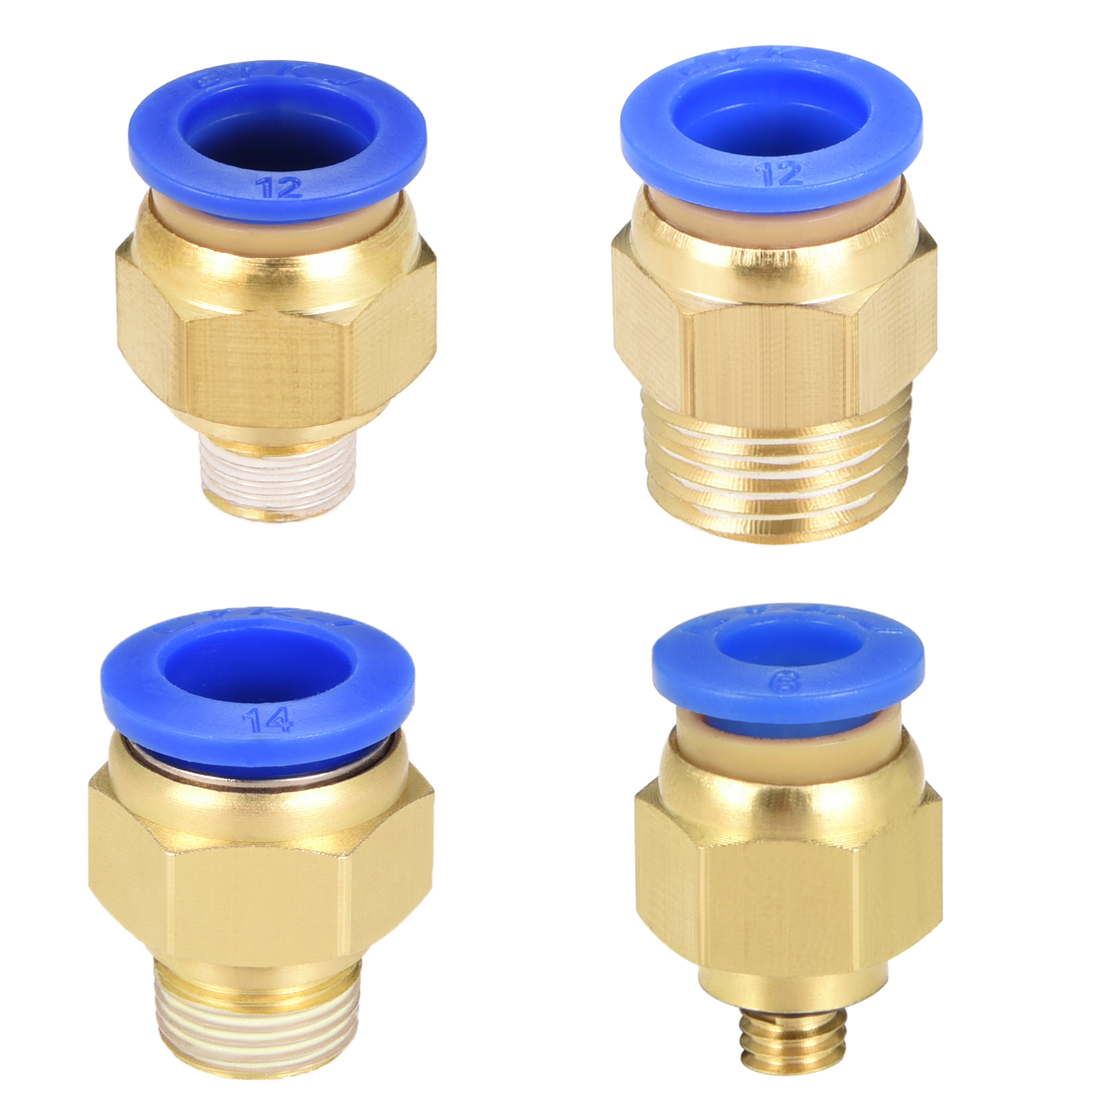 uxcell 5 Pcs Straight 2 Ways Coupler Quick Joint Push in Fittings for 12mm Tube